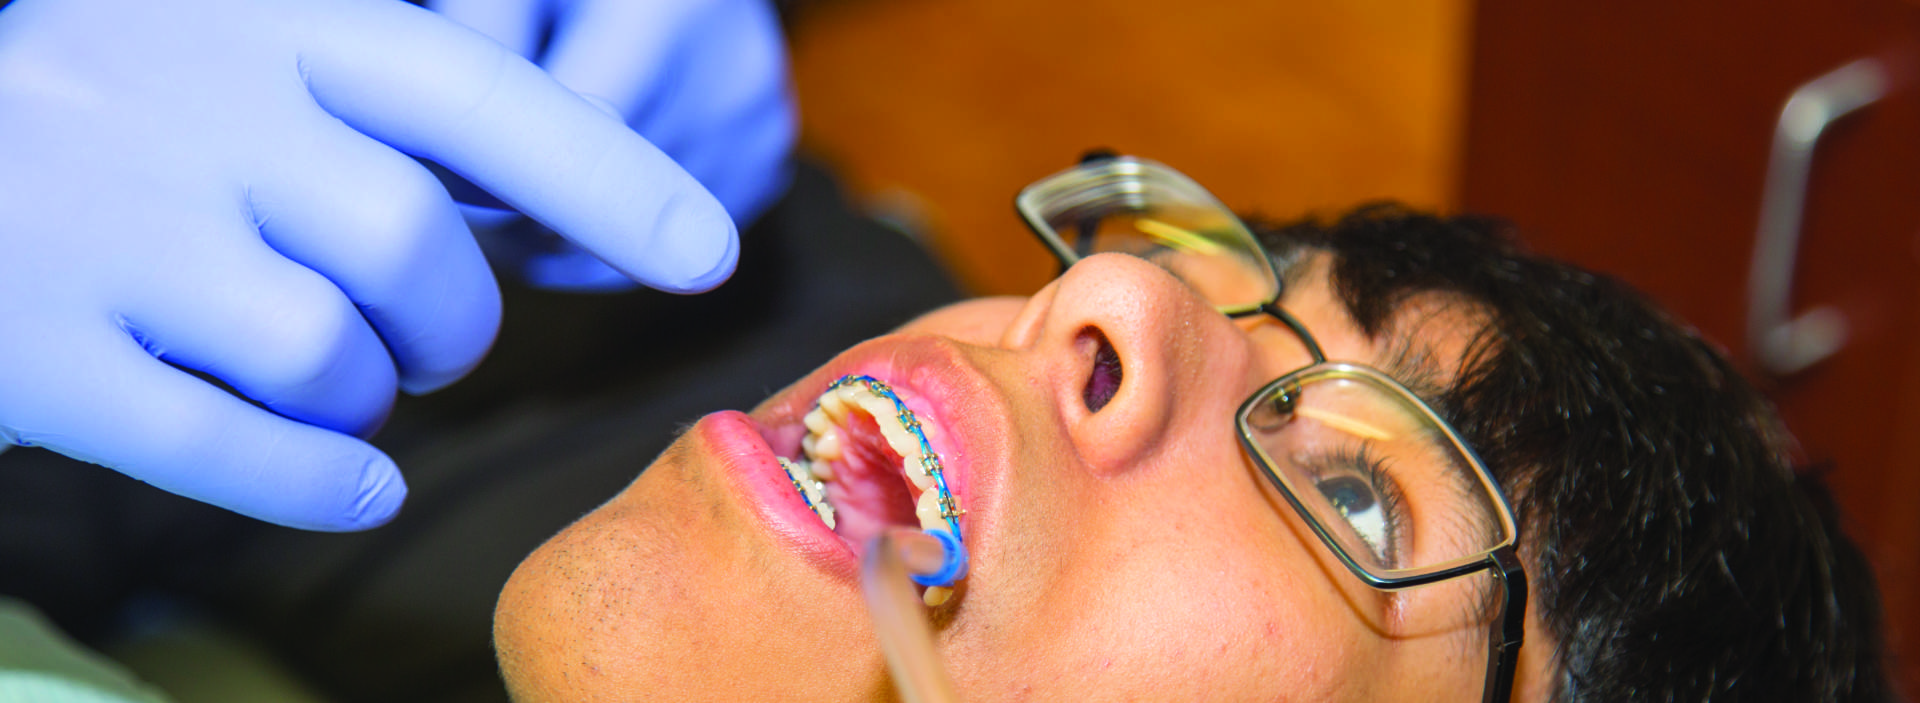 teenage boy having dental braces applied at Smile Structure Dentistry & Braces San Antonio, TX